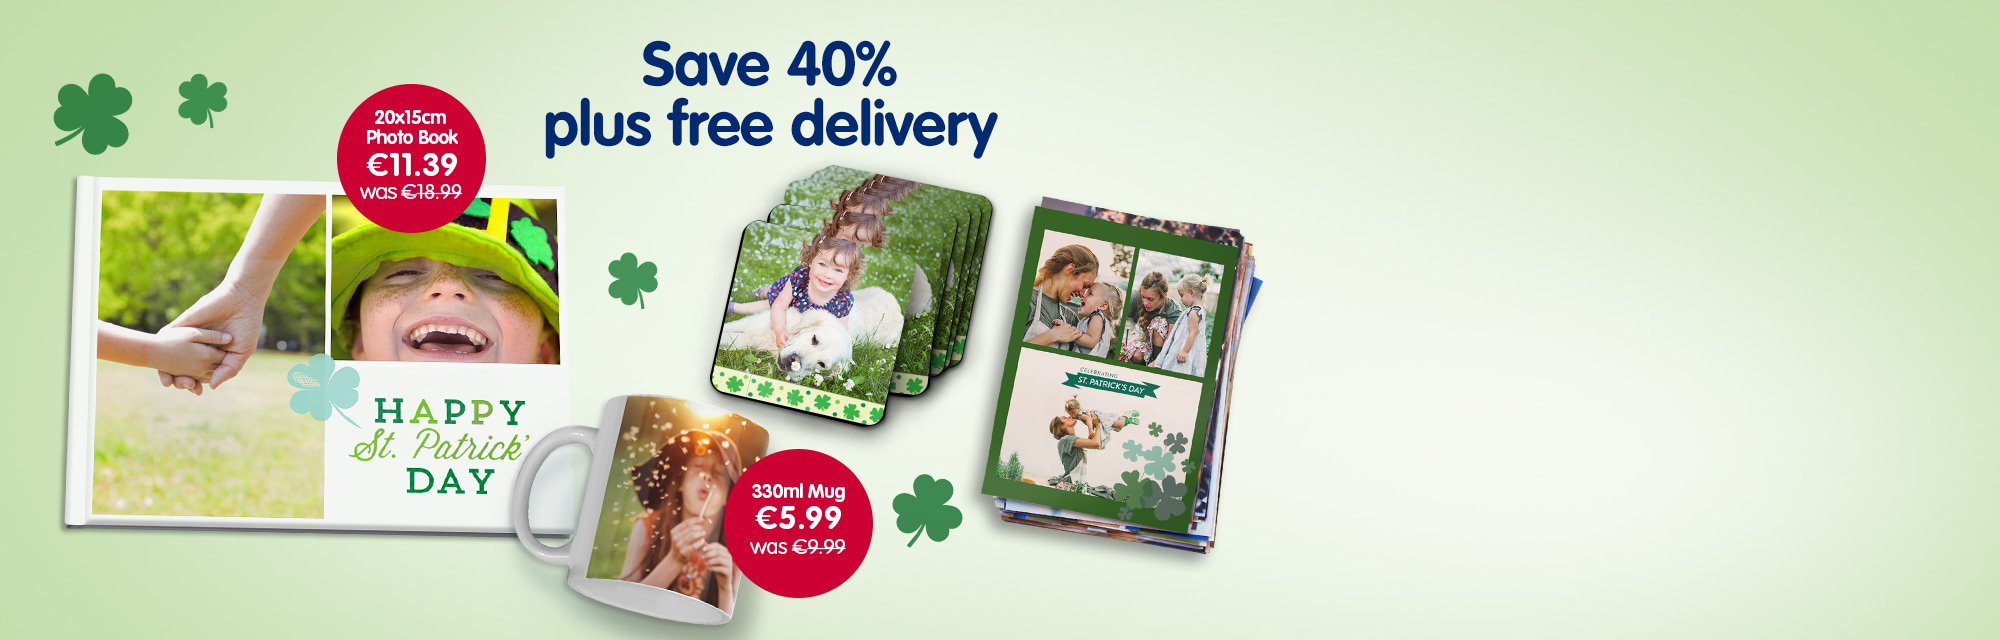 Save 40% plus free delivery